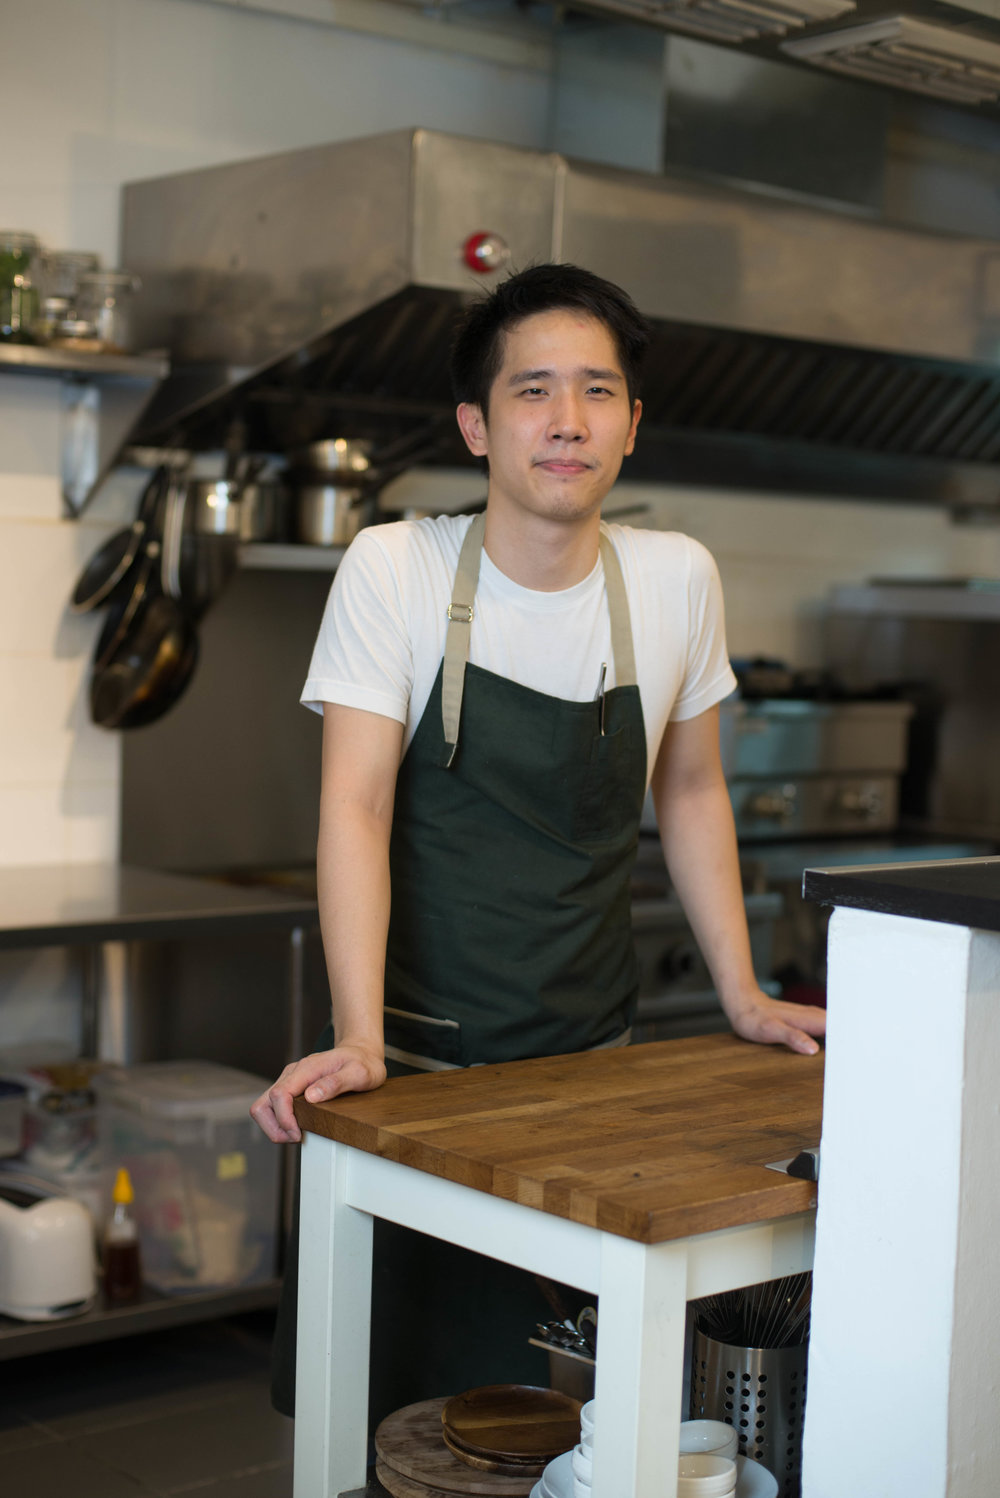 Lim Heng Kit   Chef/owner | Still dreams of playing professional football | Ceramics and cookbook addict.